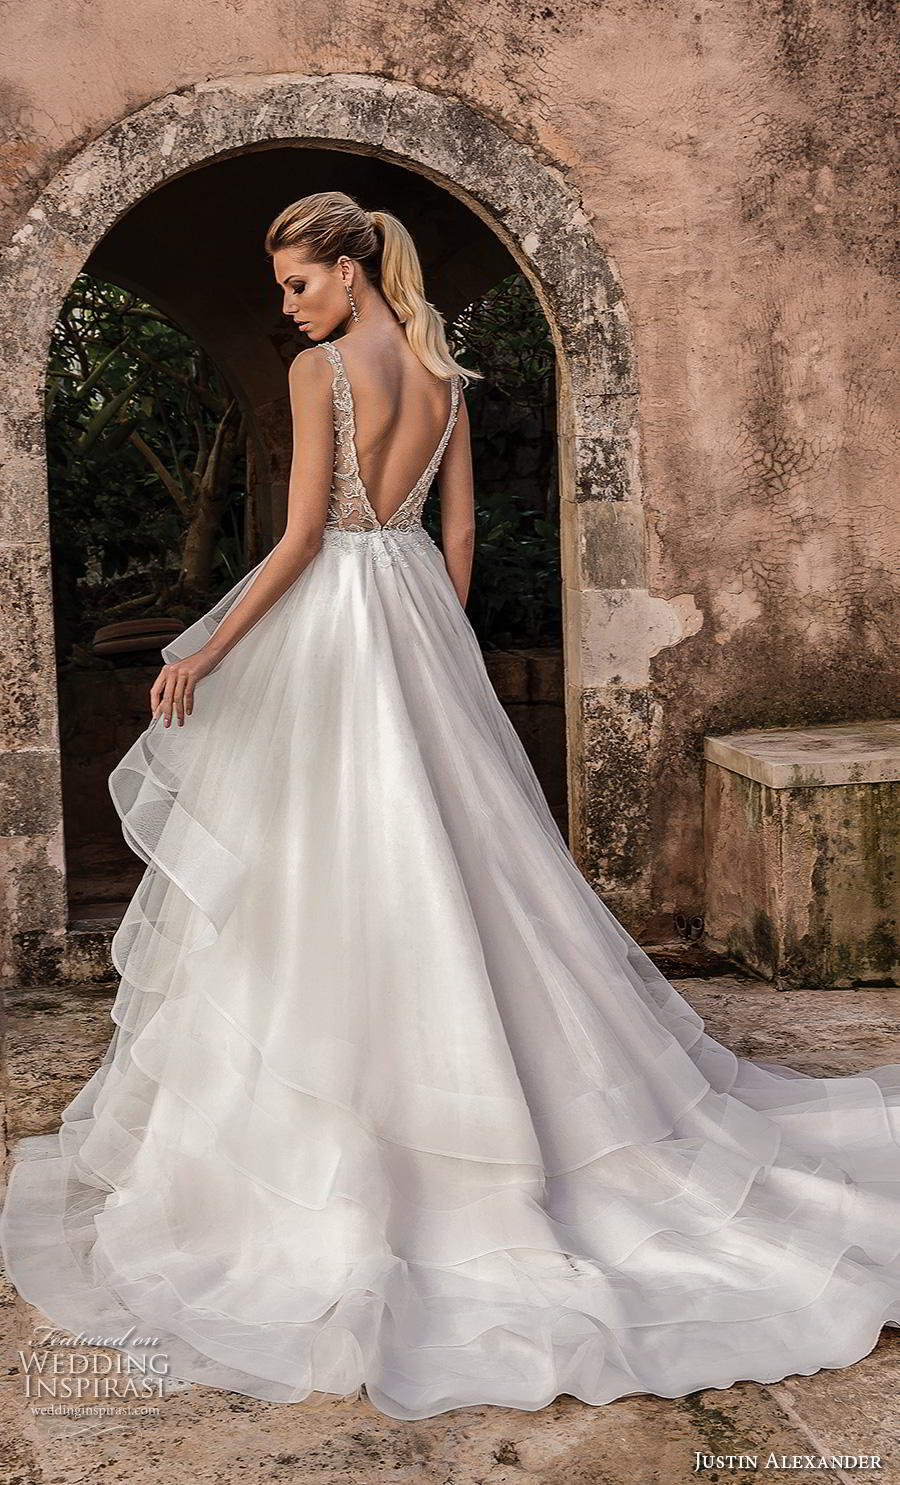 justin alexander spring 2019 bridal sleeveless with strap deep plunging v neck heavily embellished bodice tiered skirt romantic a line wedding dress backless v back chapel train (6) bv